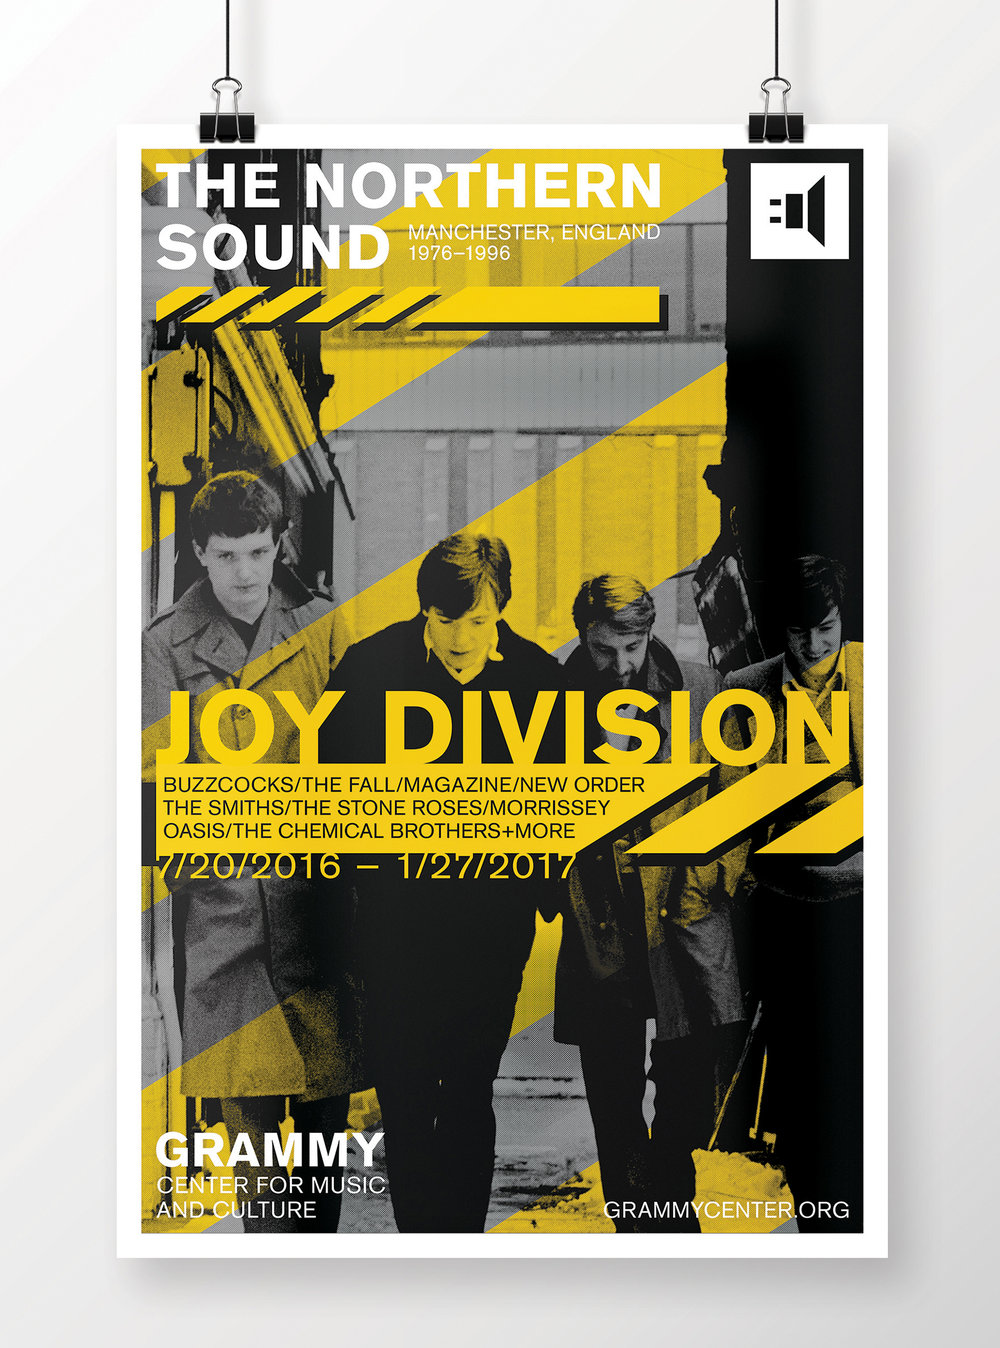 Joy Division are one of the must influential indie rock and post-punk bands of all time and helped cement Manchester's legacy as a musical mecca.